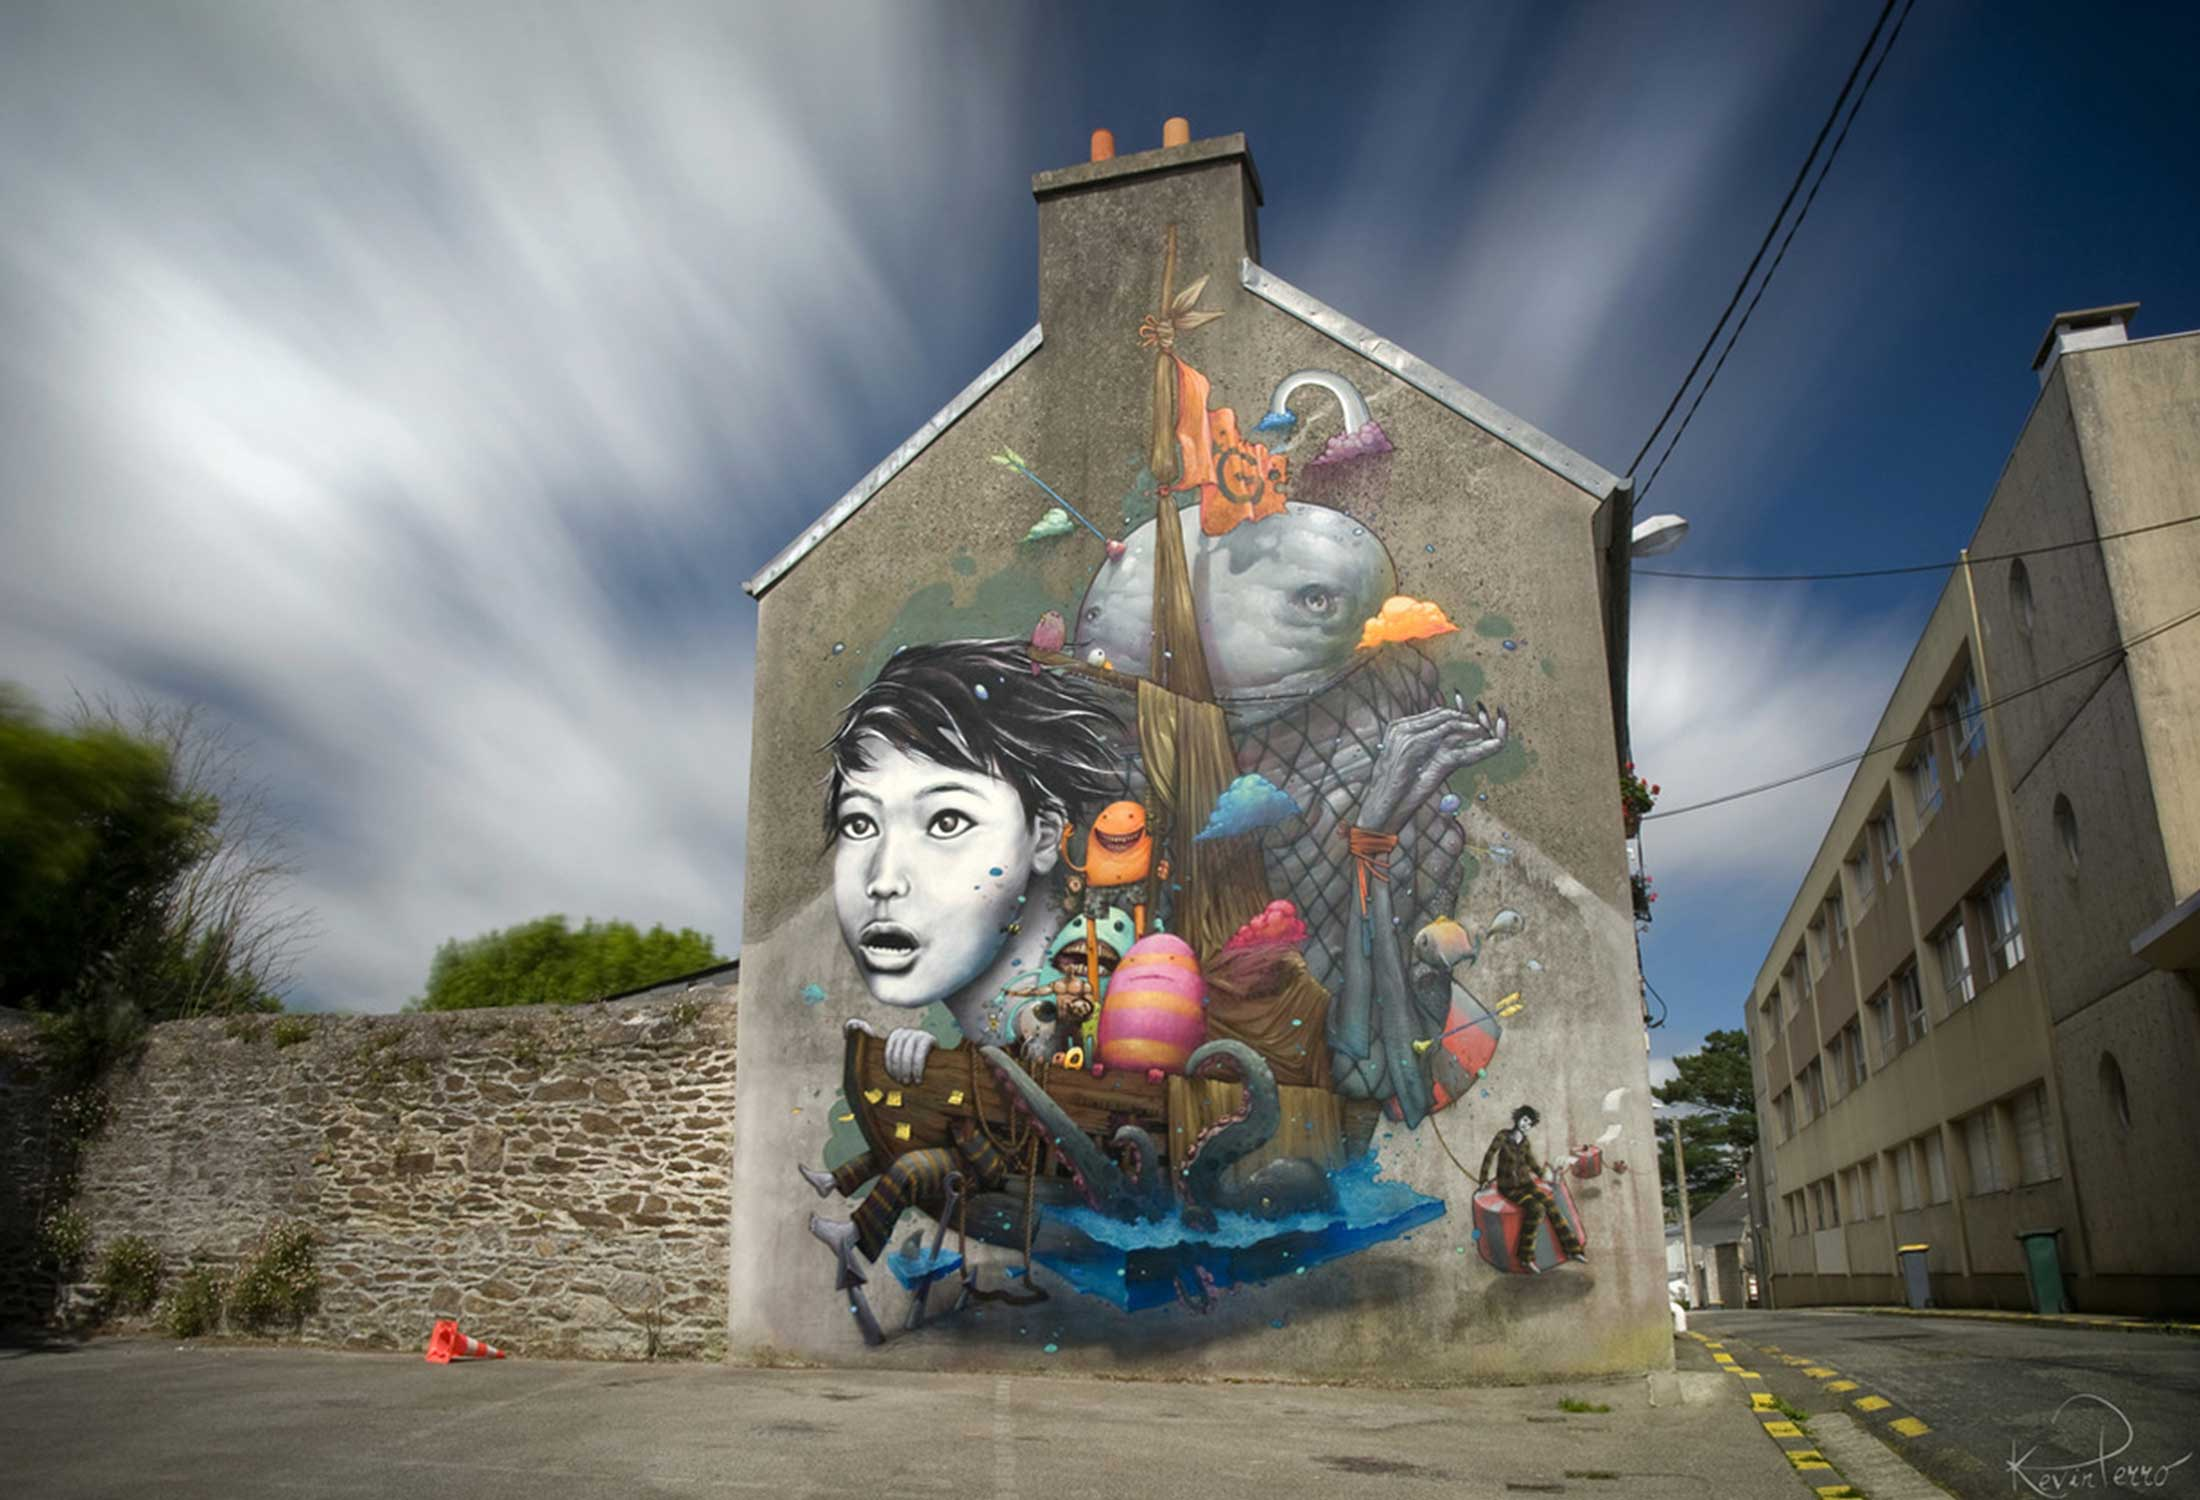 La Pêche Miraculeuse by Liliwenn and Bom. K is an enchanting and memorable mural with vibrant and beautiful colors.